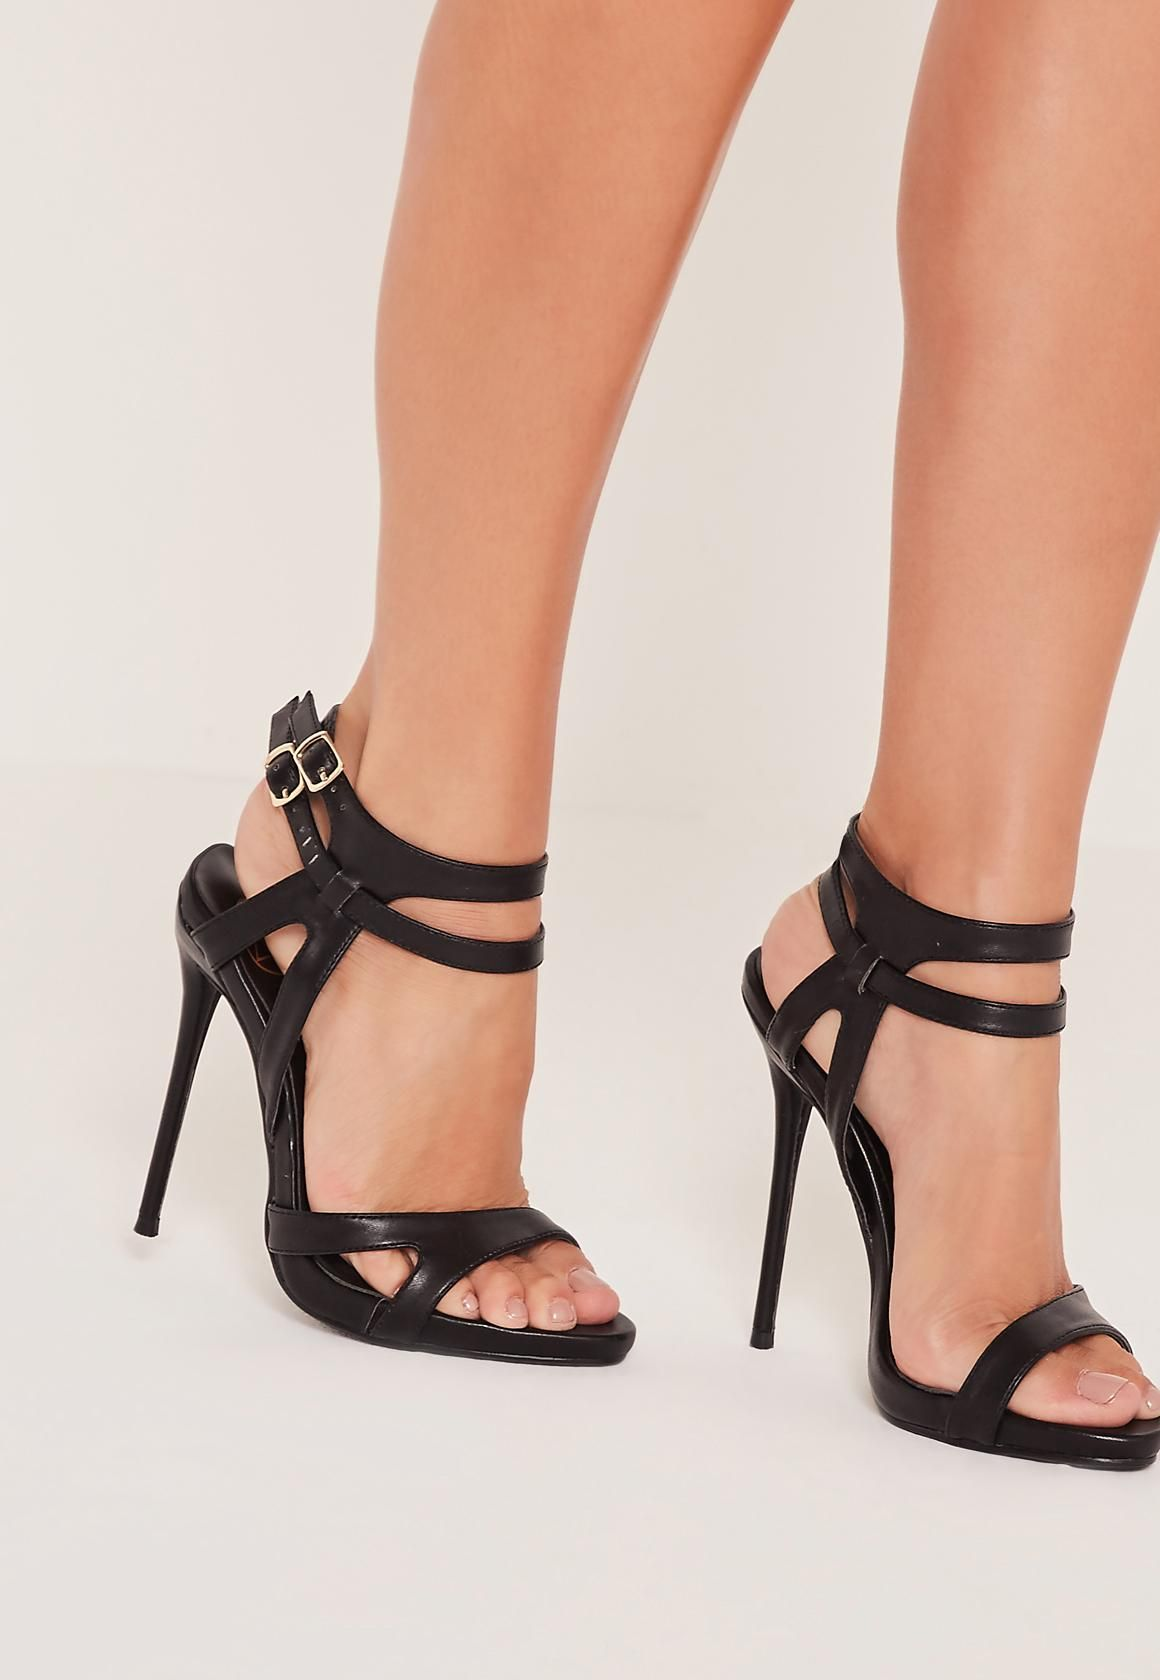 aca801e5cdd9 Double Ankle Strap Barely There Heeled Sandals Black - Missguided Heeled  Sandals